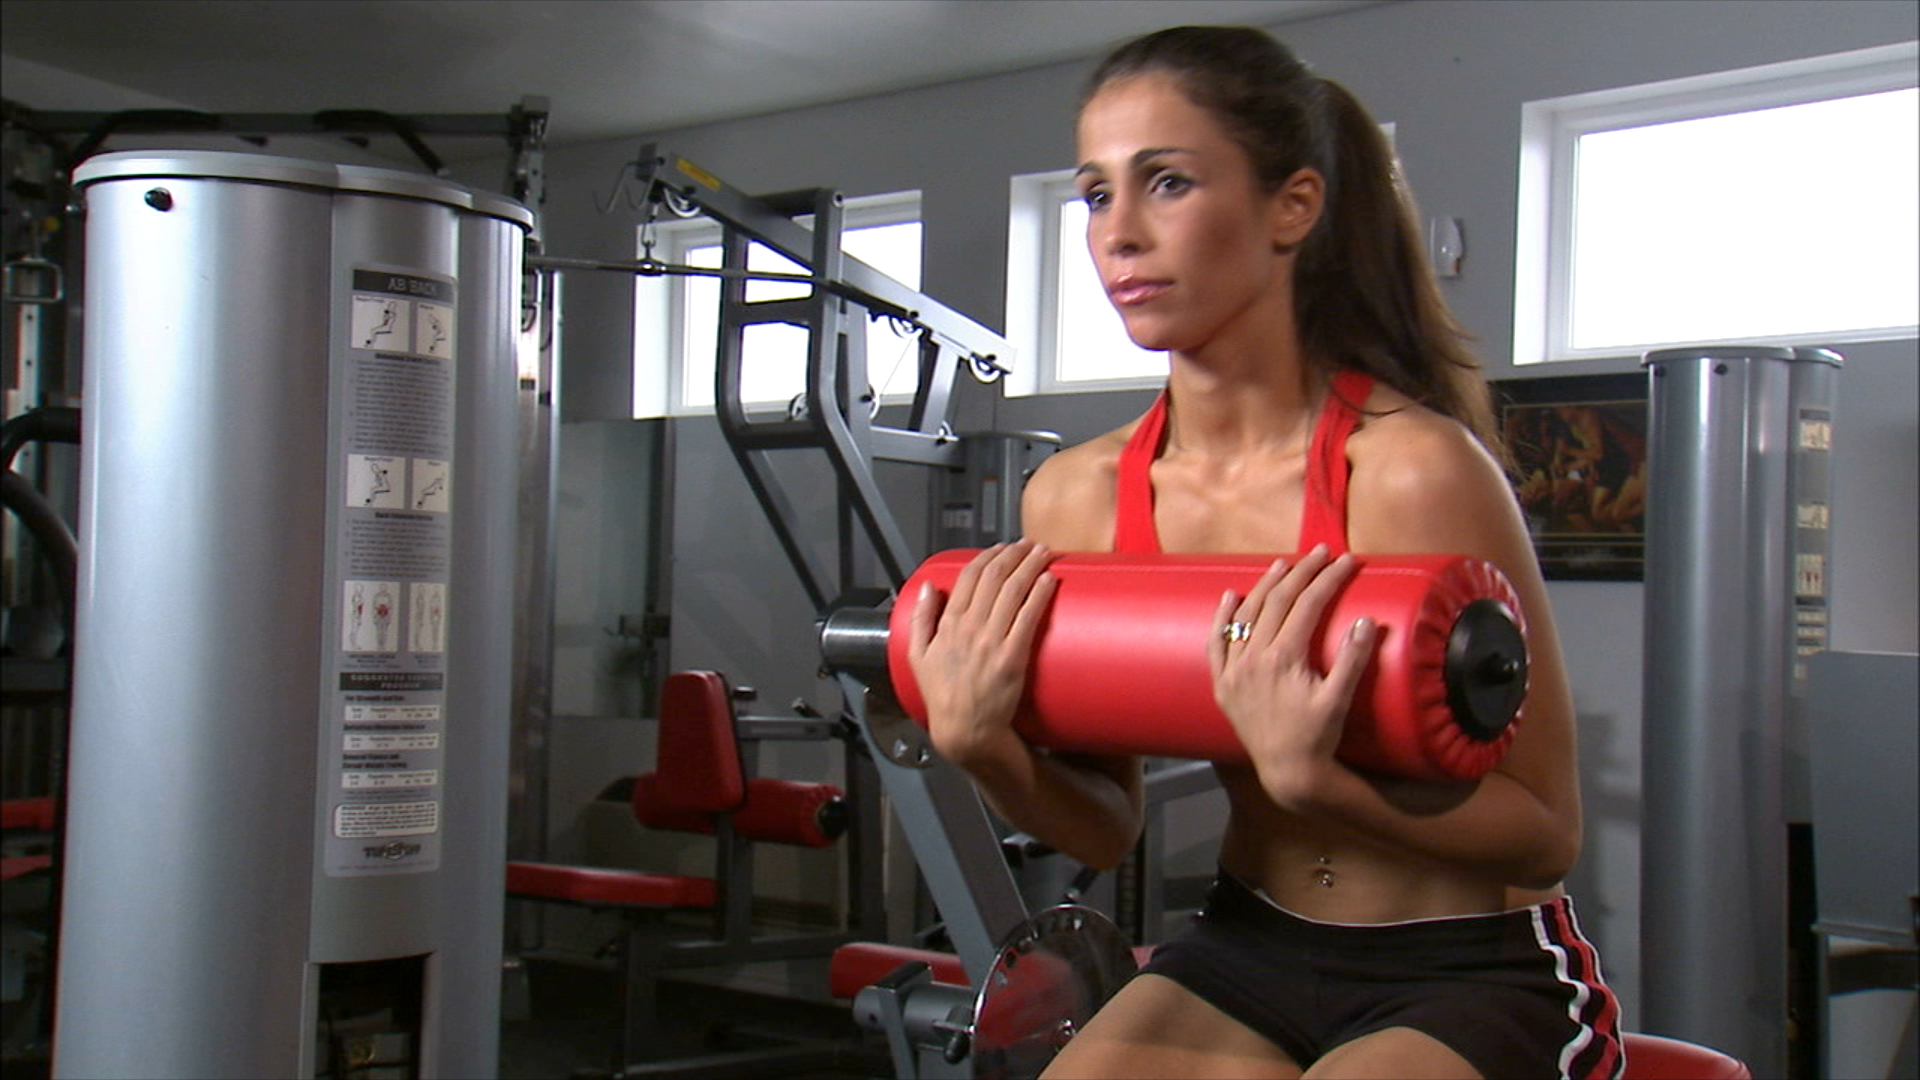 Woman doing ab workout in gym weight room unlimited